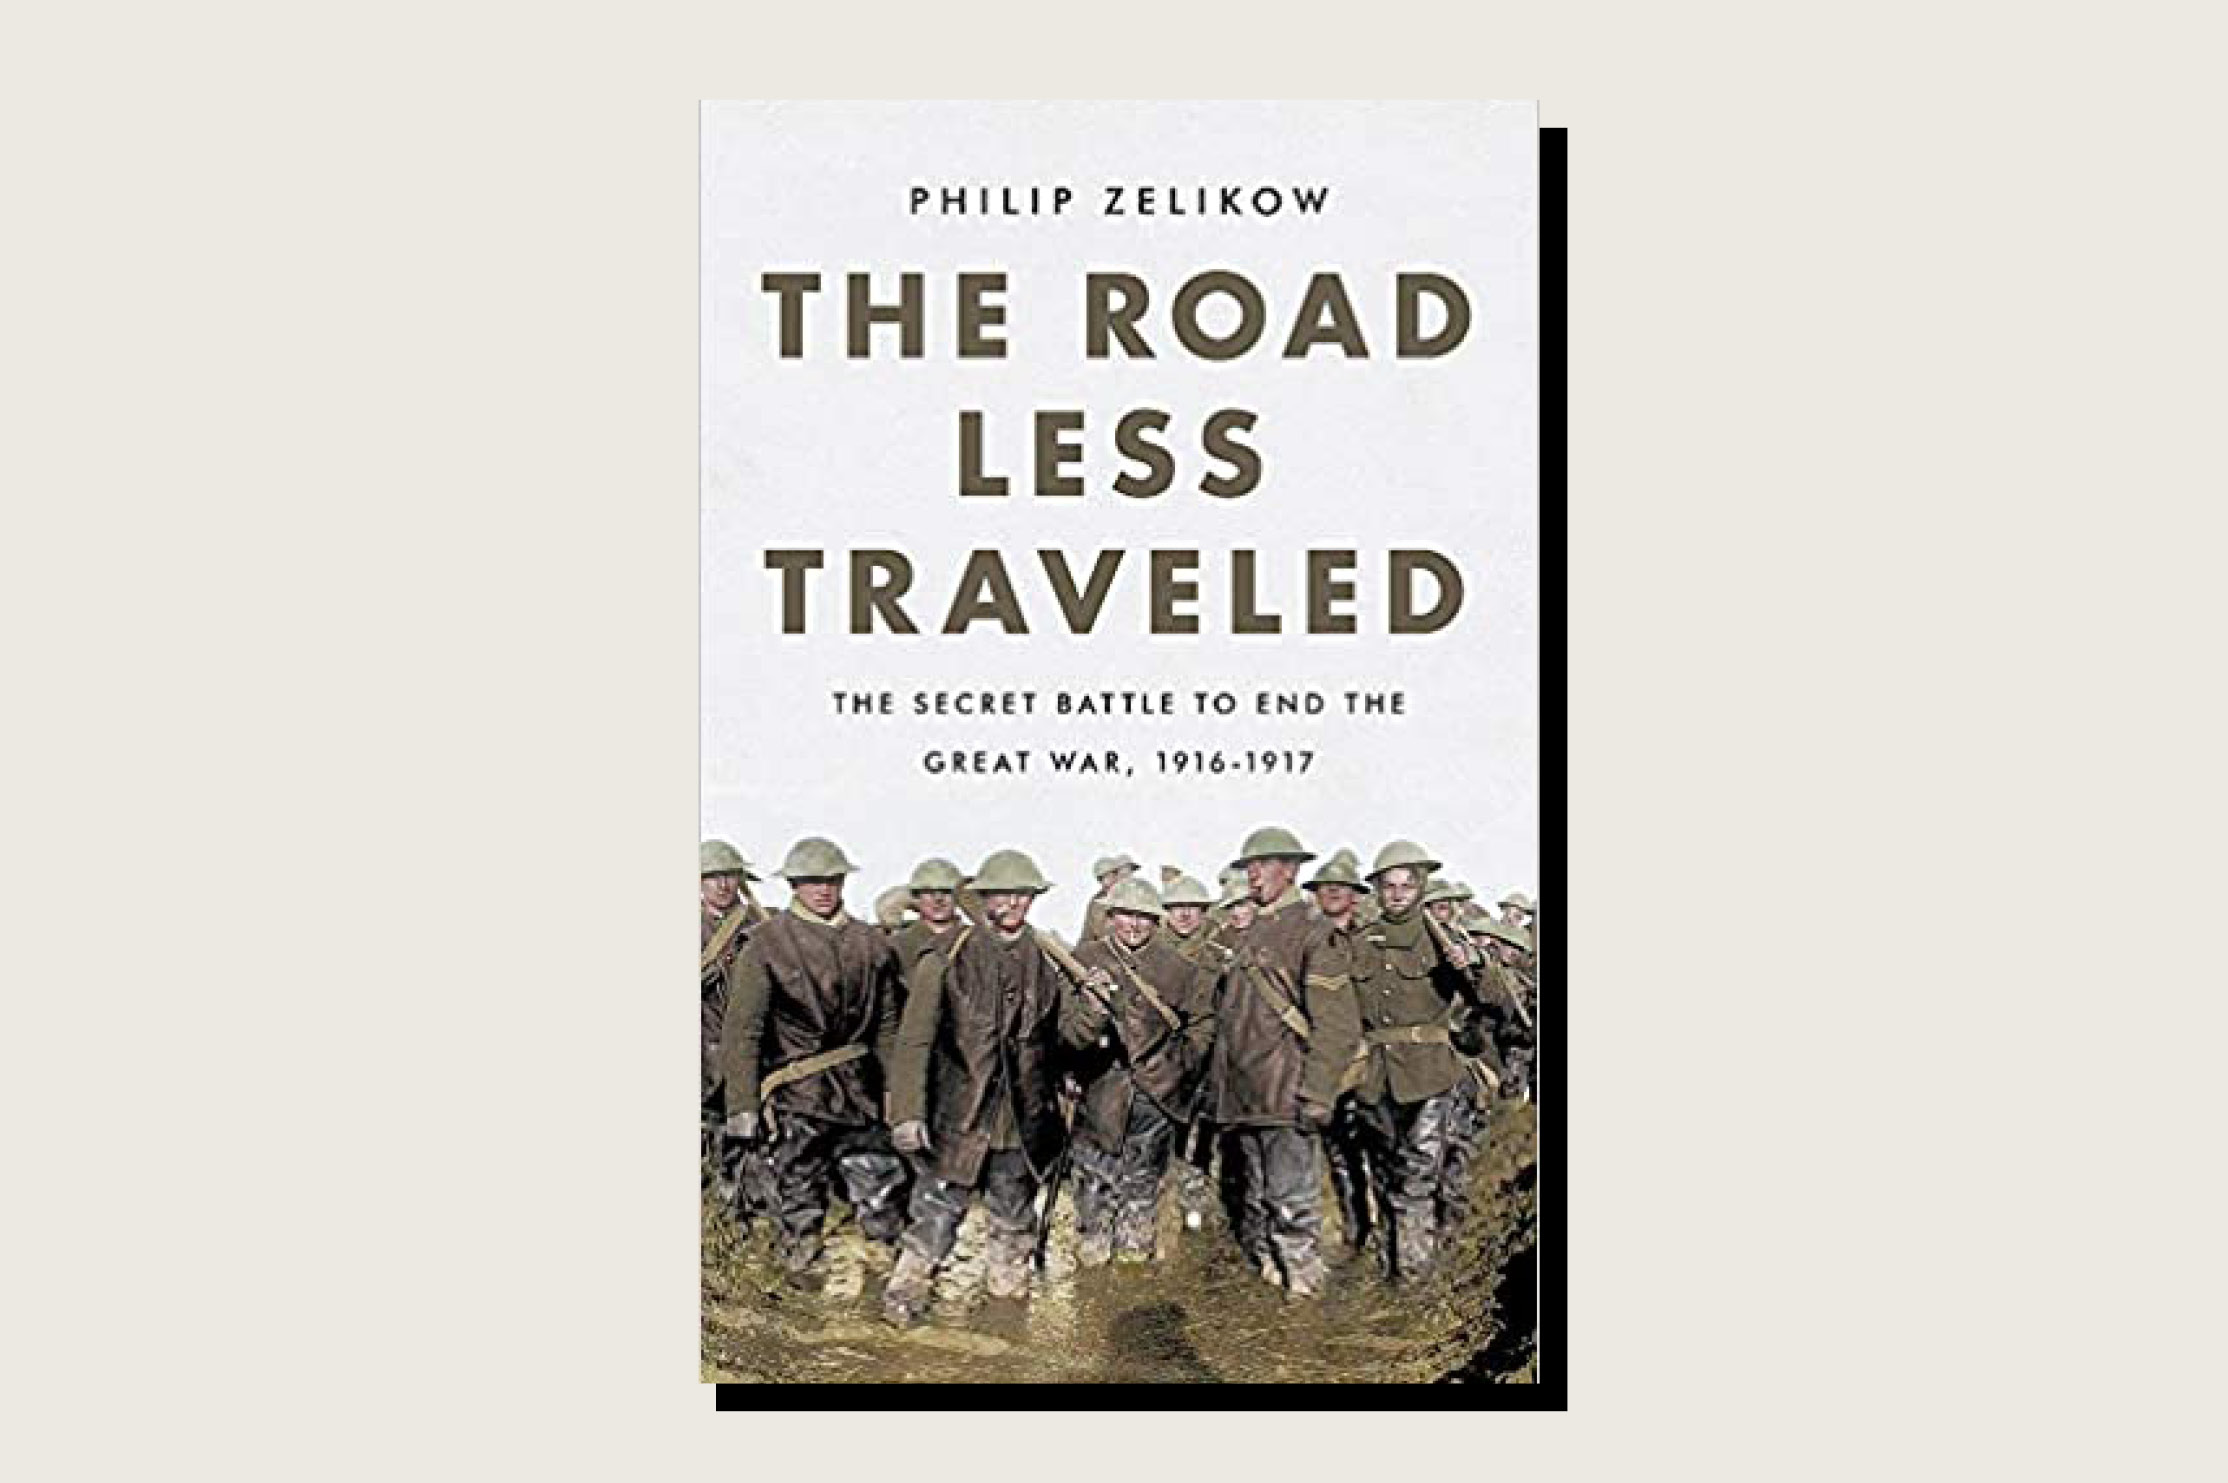 The Road Less Traveled: The Secret Battle to End the Great War, Philip Zelikow, PublicAffairs, 352 pp., .00, March 2021